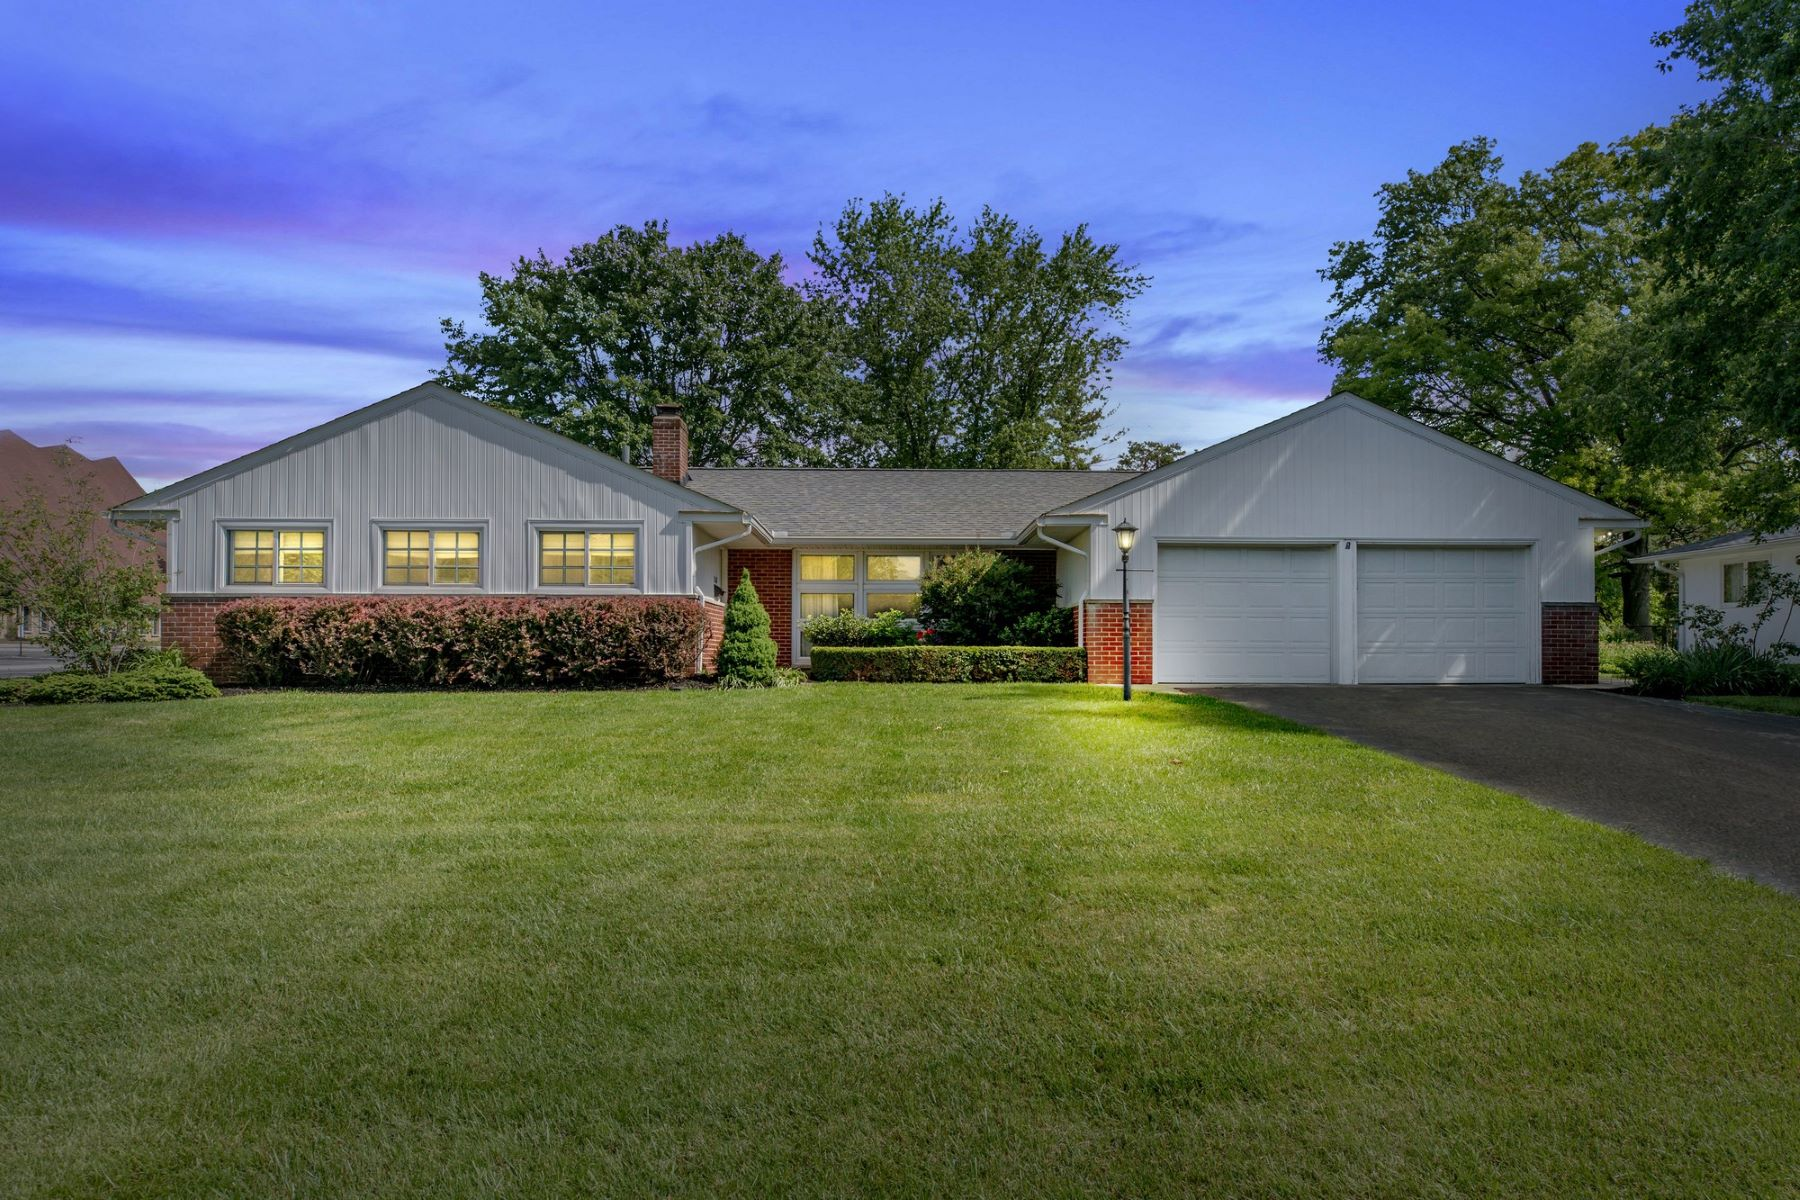 Single Family Home for Sale at 2268 Lytham Road Upper Arlington, Ohio, 43220 United States